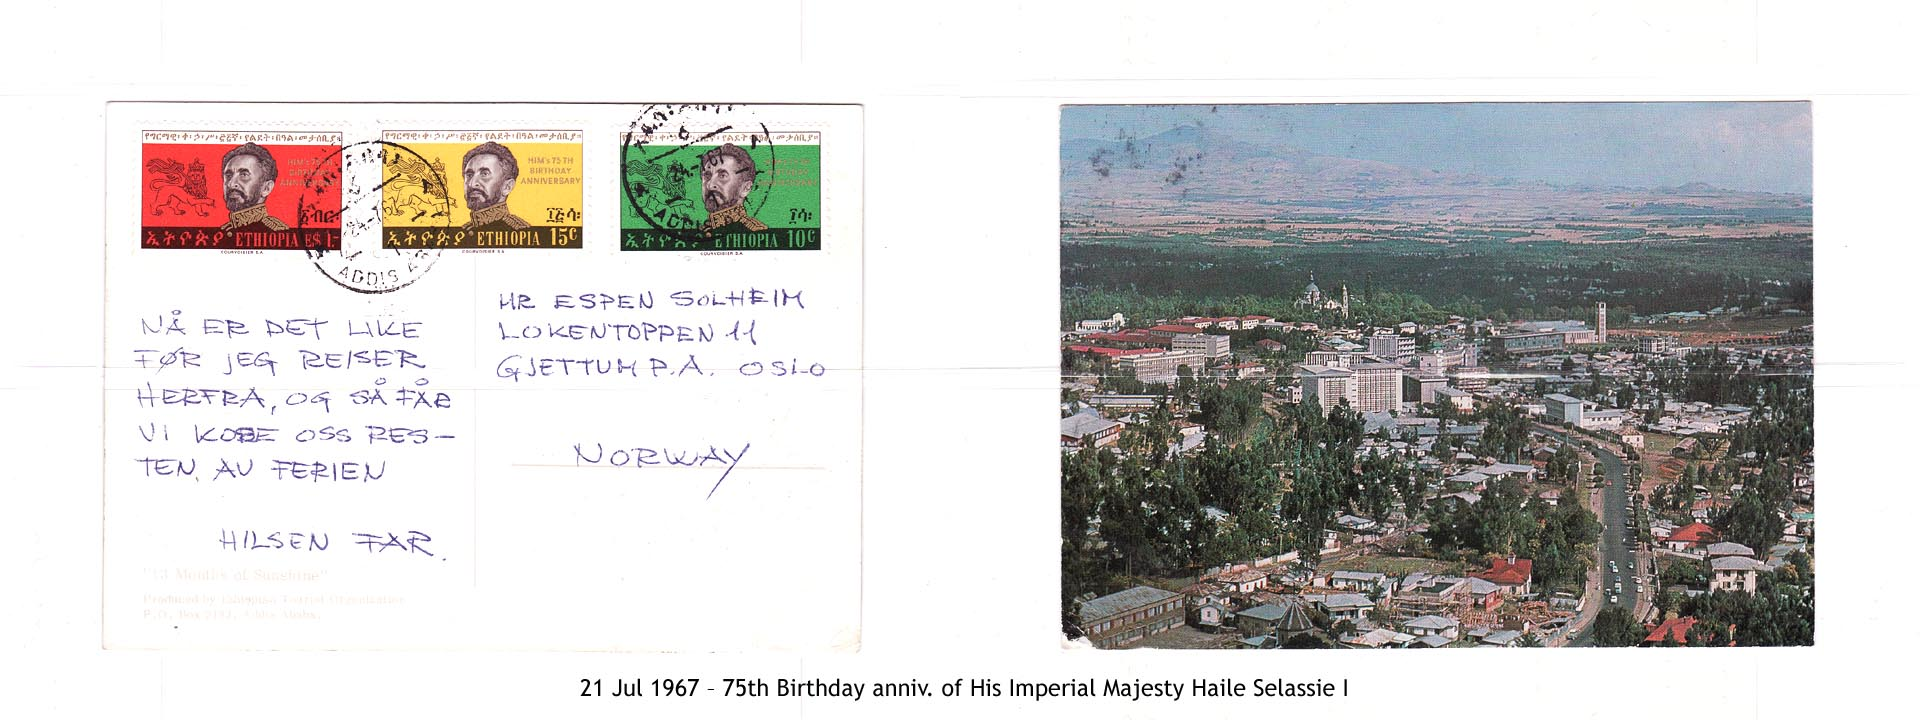 19670721 – 75th Birthday anniv. of His Imperial Majesty Haile Selassie I